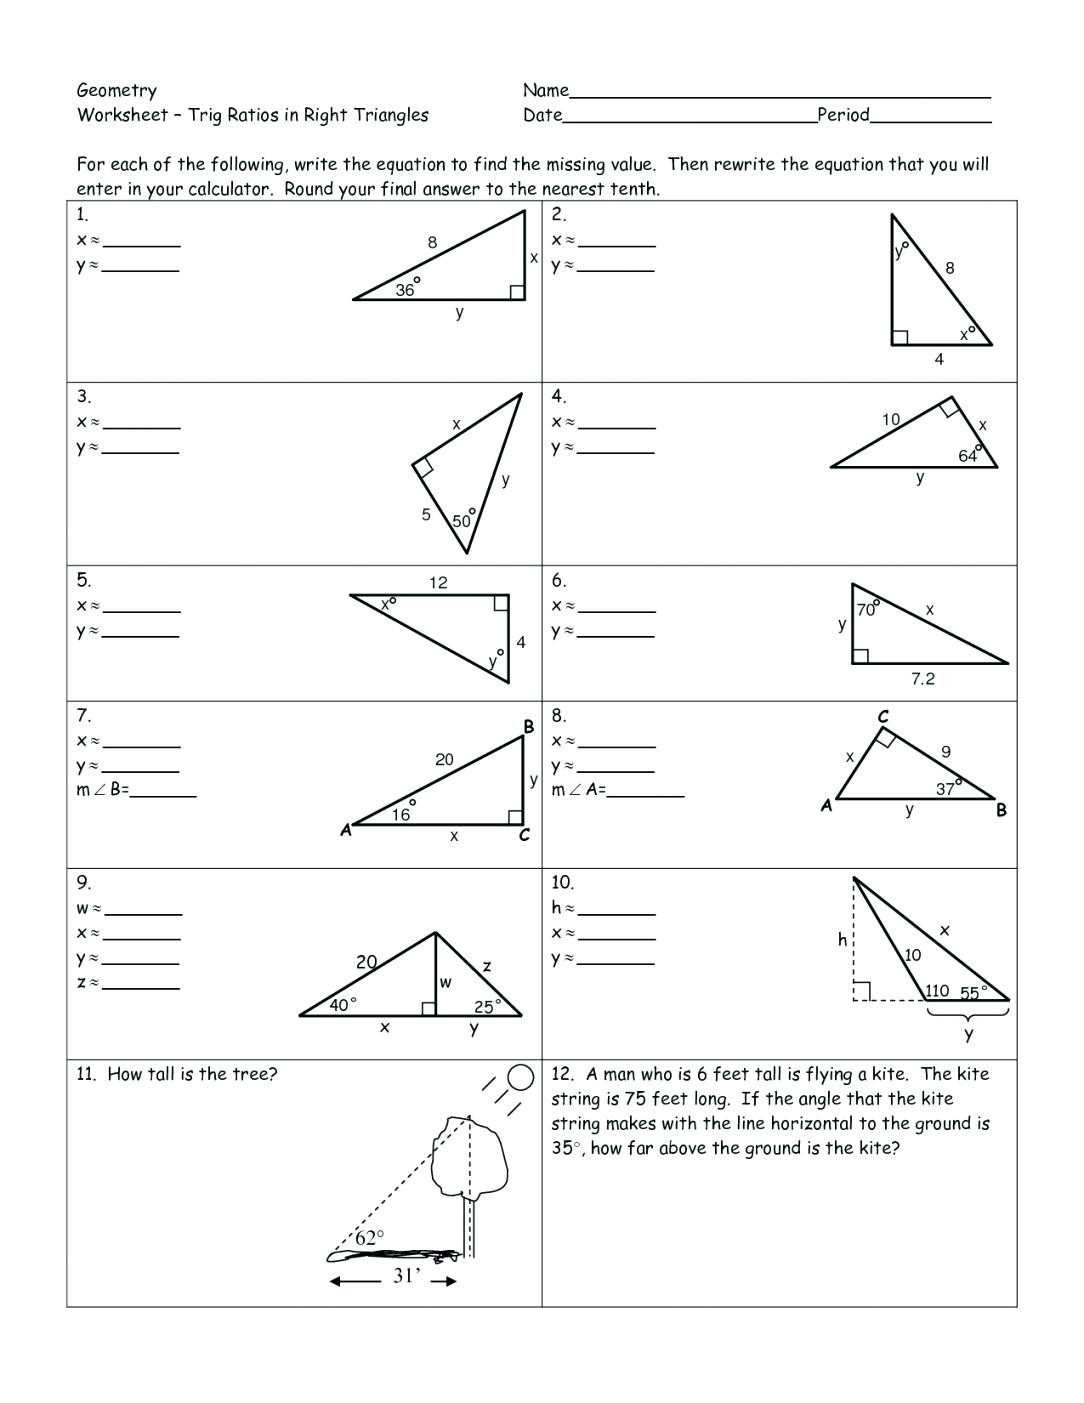 Heating and Cooling Curves Worksheet Freezing and Boiling Point Graph Worksheet